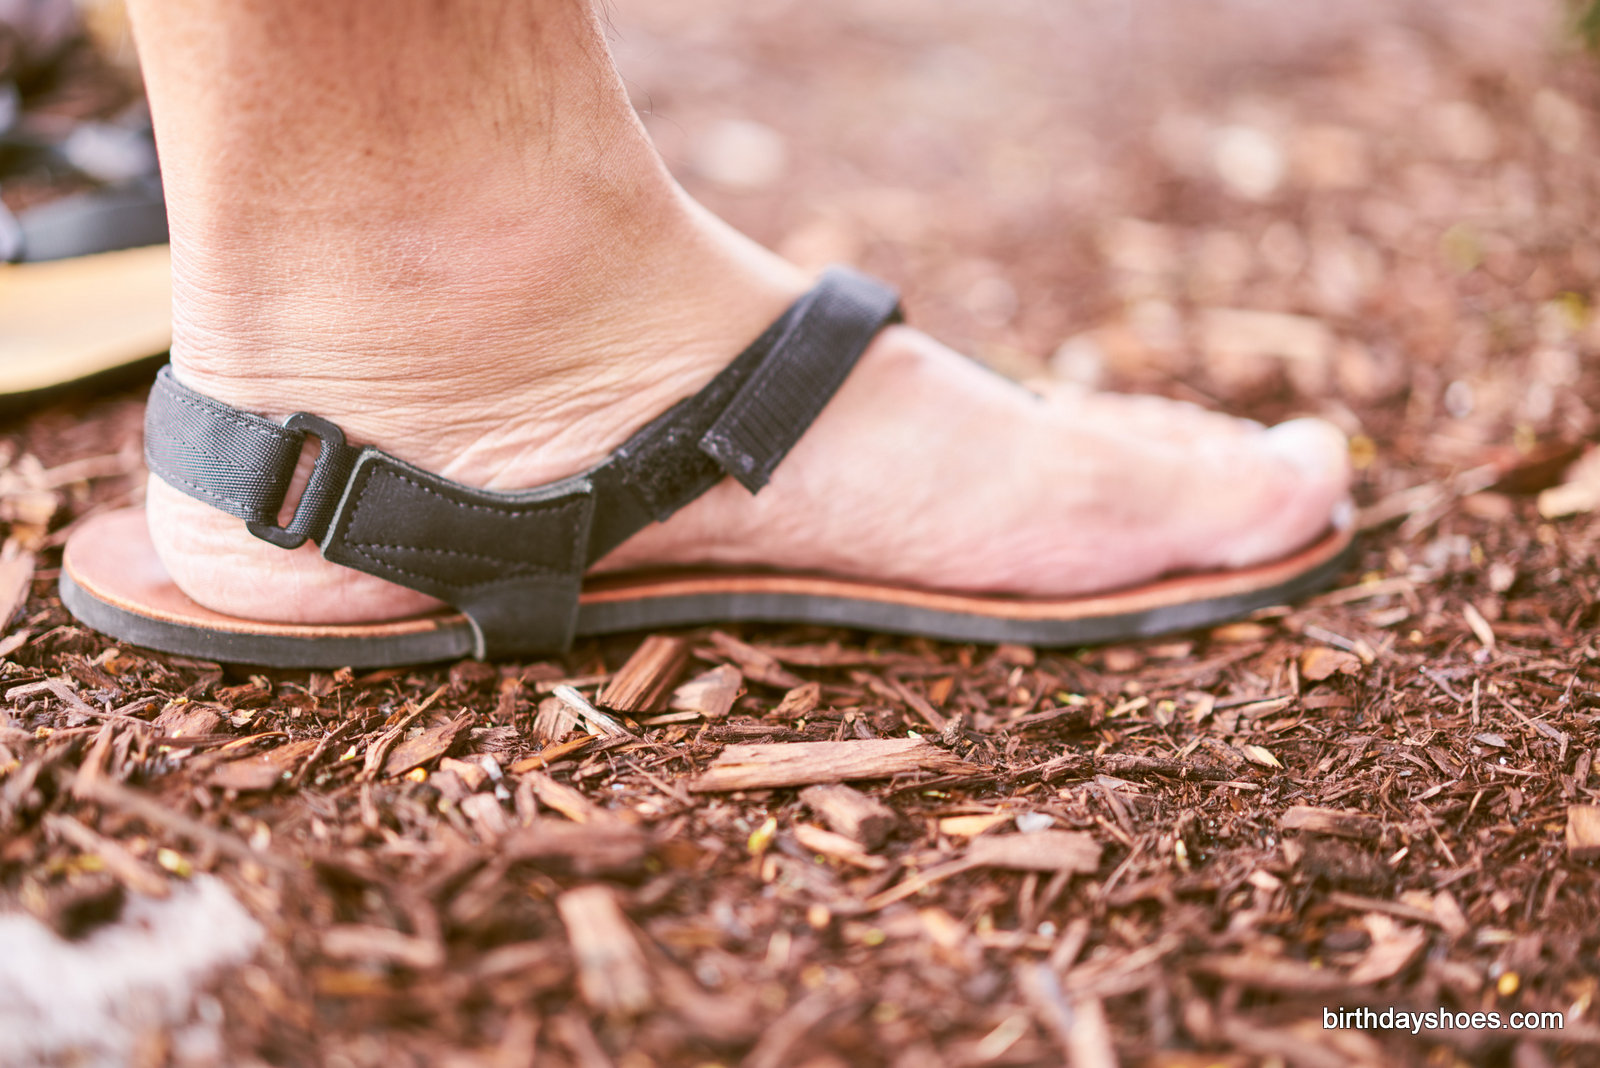 The new leather insole post is very comfortable, durable, and strong